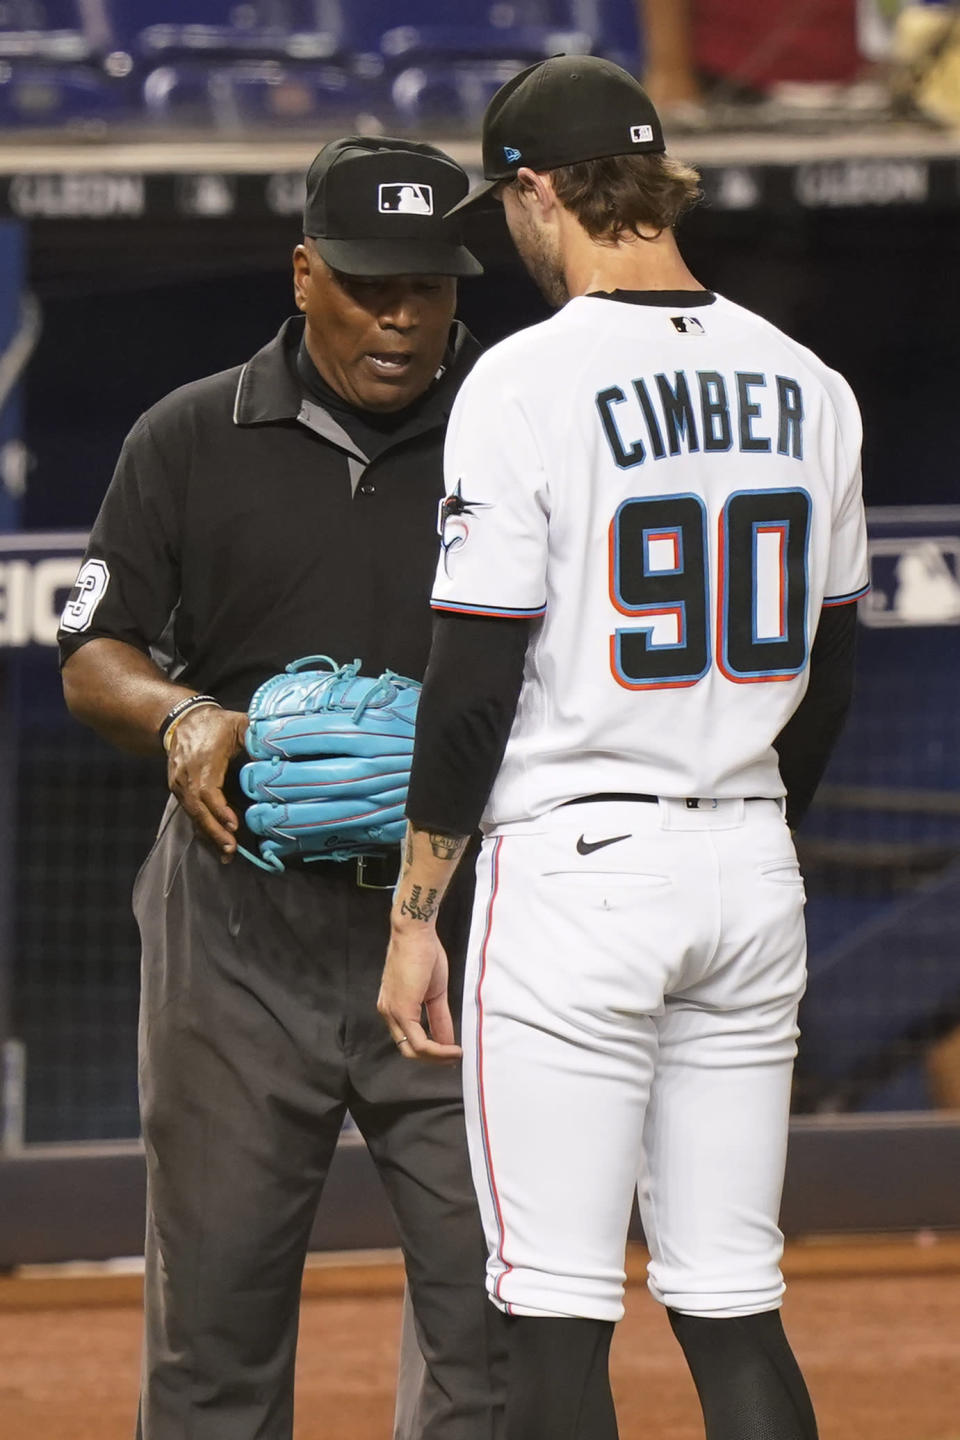 MLB umpire Laz Diaz checks the glove of Miami Marlins relief pitcher Adam Cimber (90) during the sixth inning of a baseball game against the Toronto Blue Jays, Wednesday, June 23, 2021, in Miami. (AP Photo/Marta Lavandier)